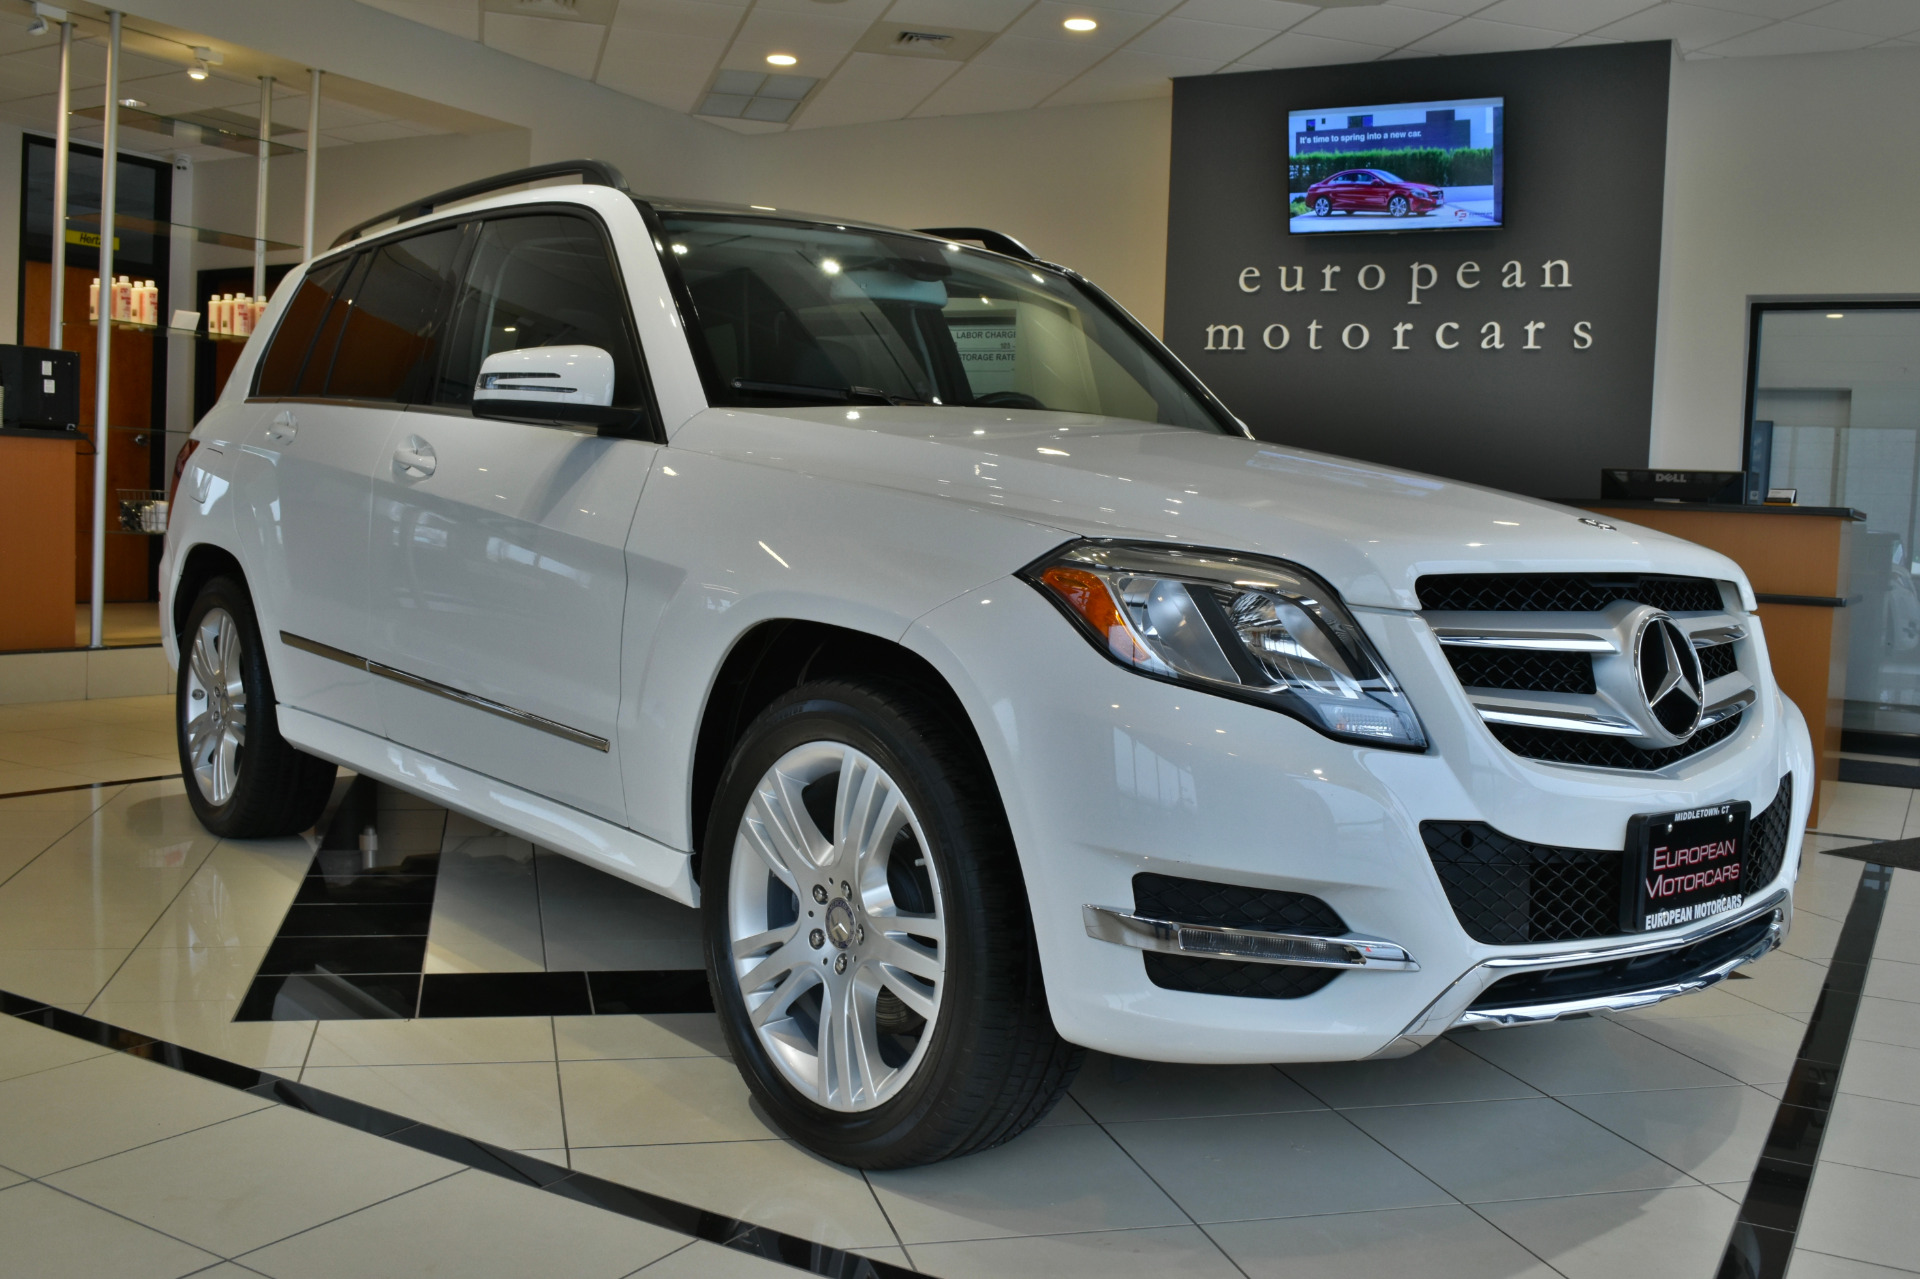 2015 mercedes benz glk glk 350 4matic for sale near for Euro motorcars mercedes benz